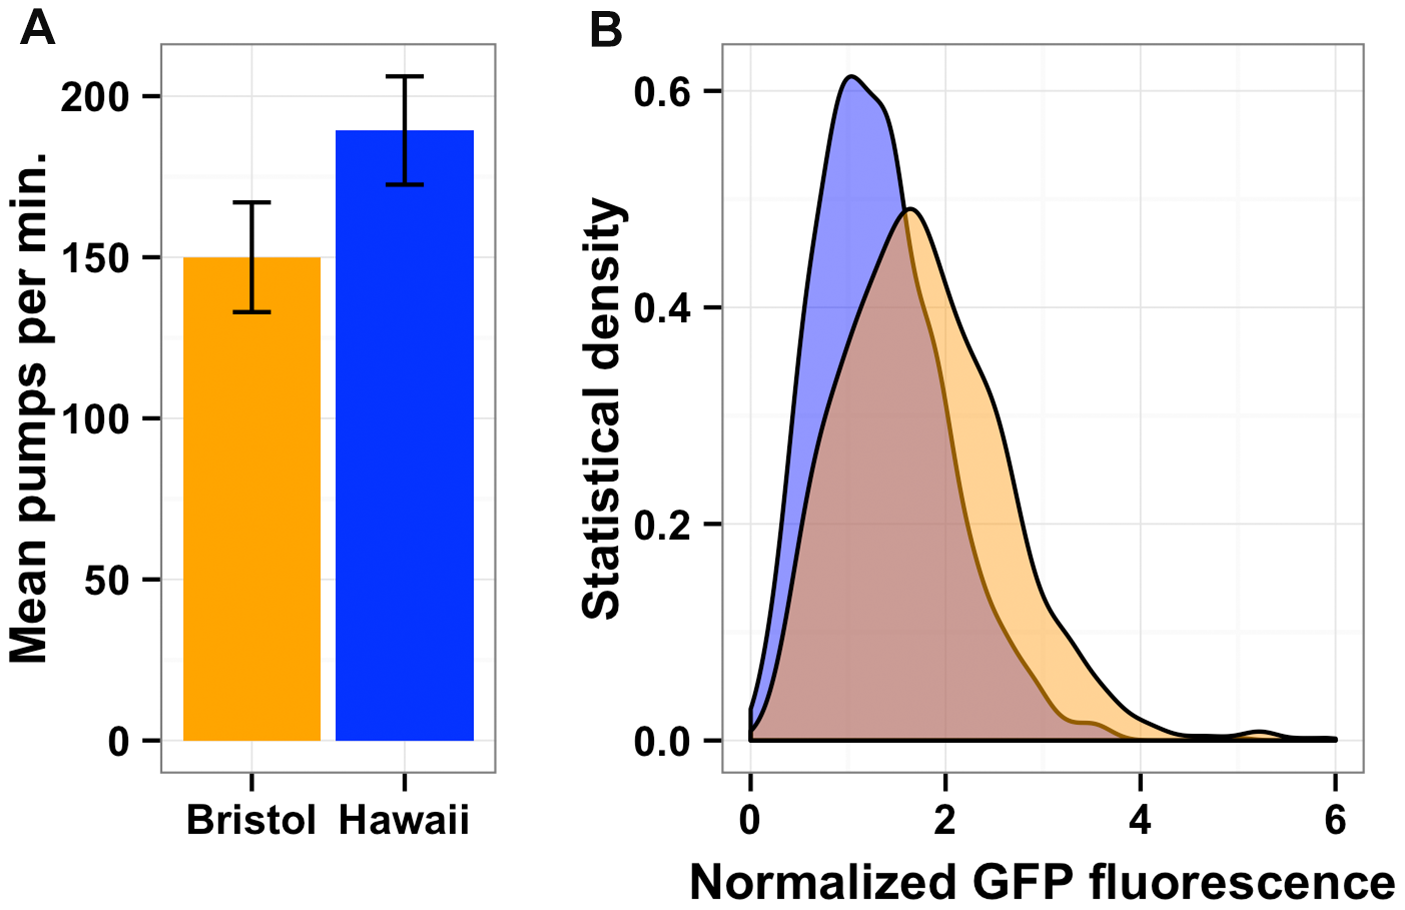 Bacterial food consumption differs between the Bristol and Hawaii strains.